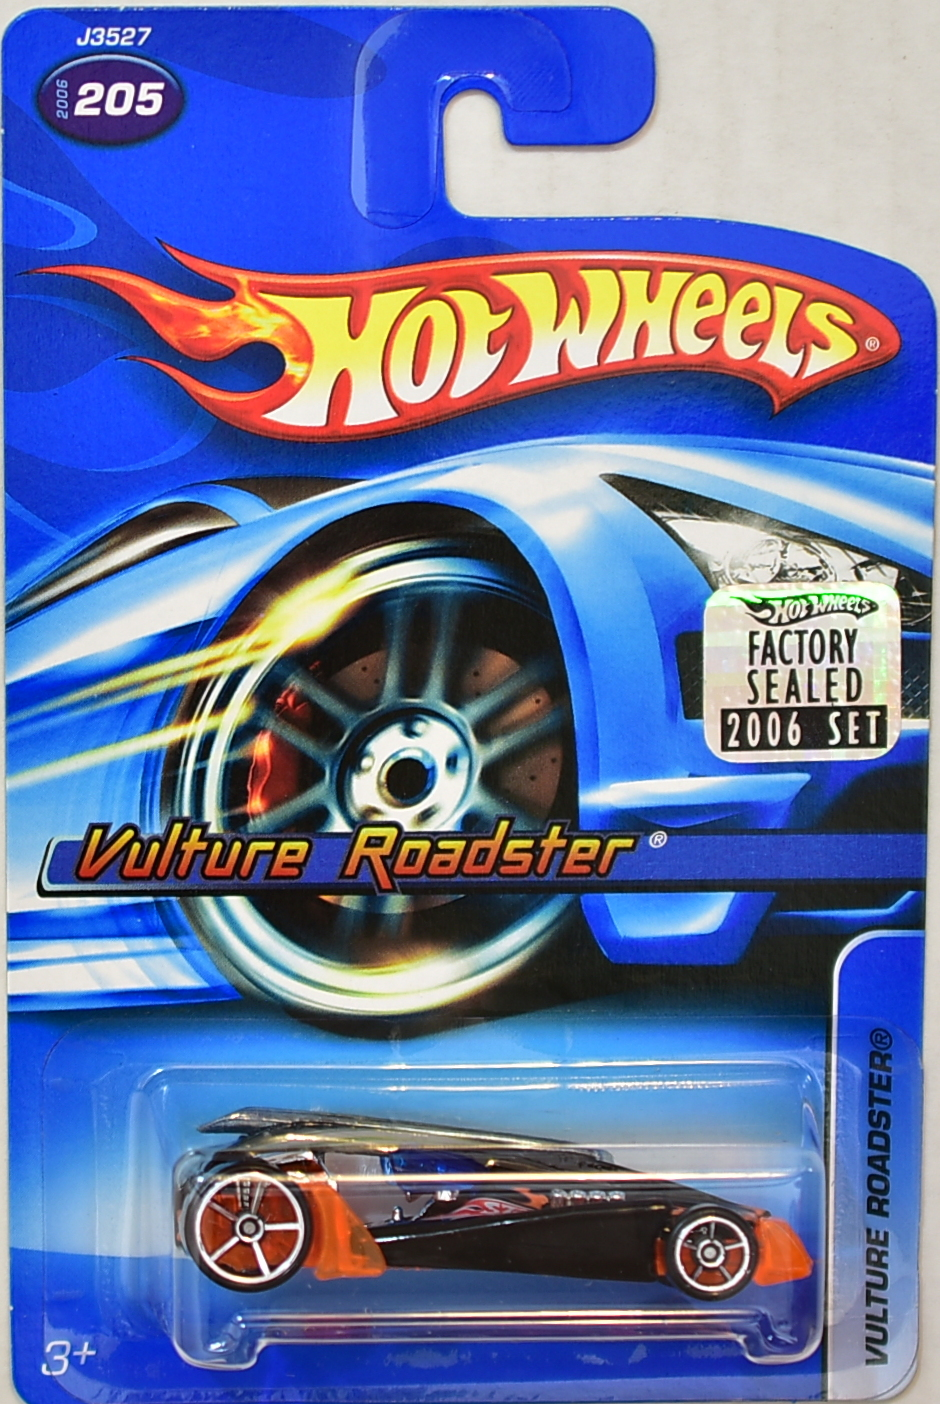 HOT WHEELS 2006 VULTURE ROADSTER #205 FACTORY SEALED